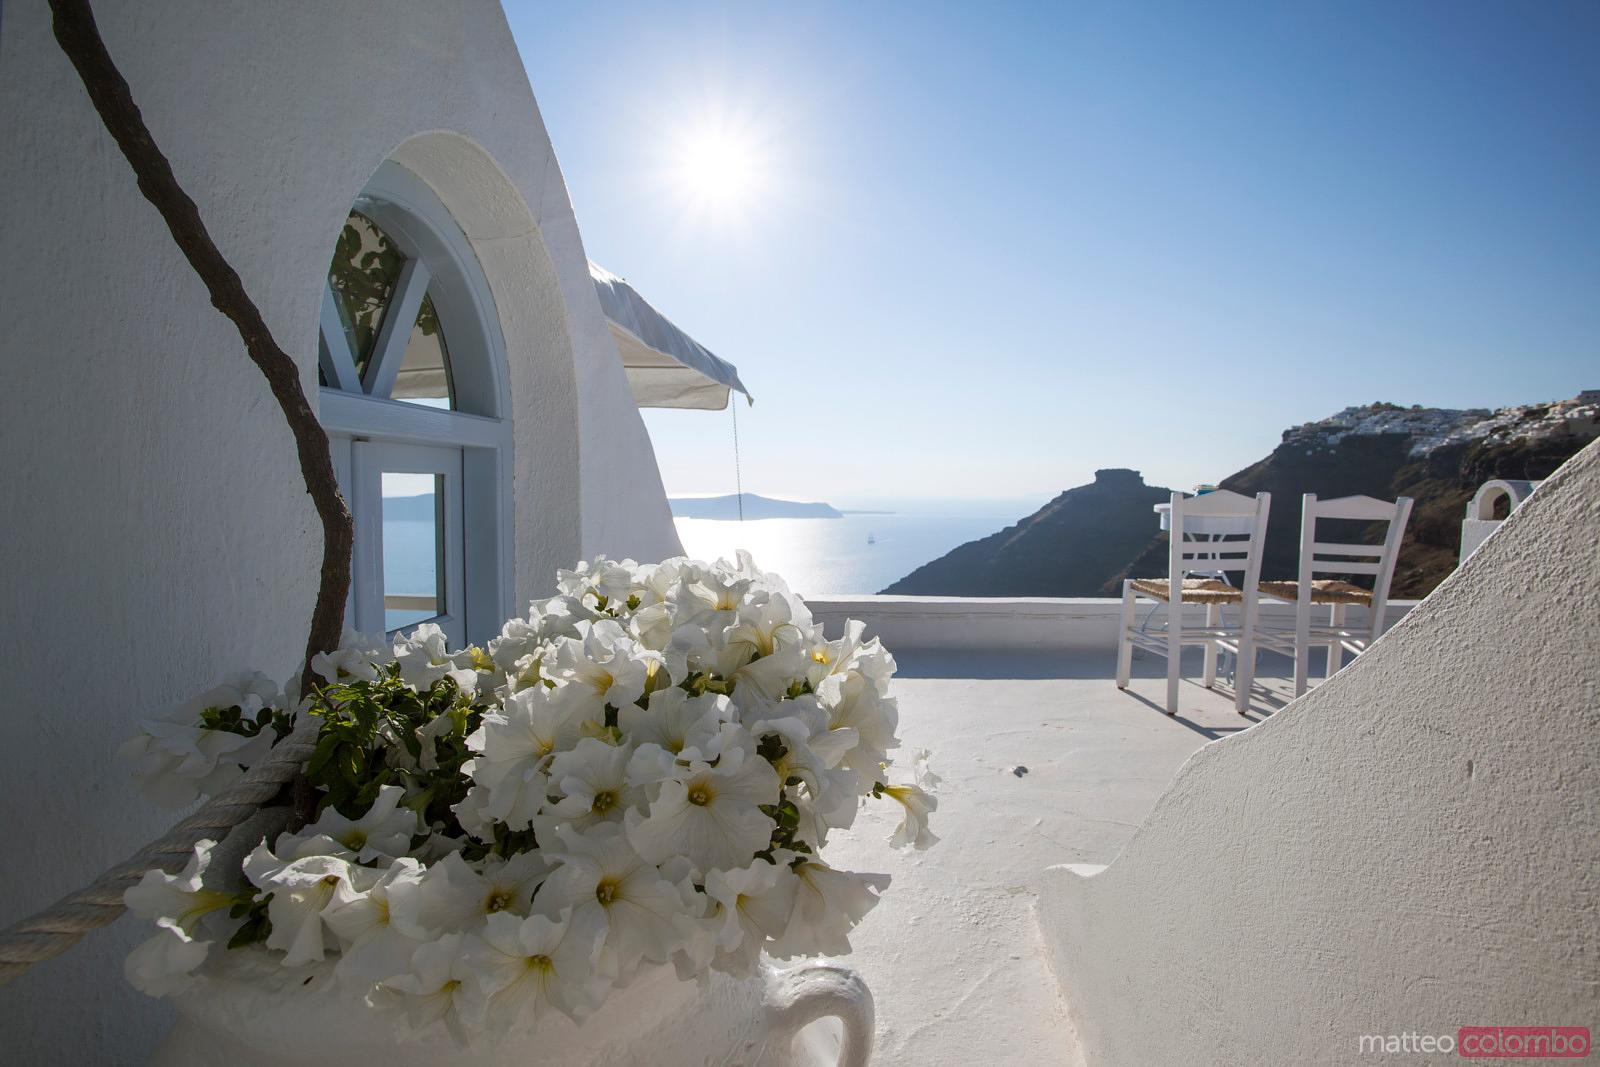 Typical whitewashed house in Santorini, Greece